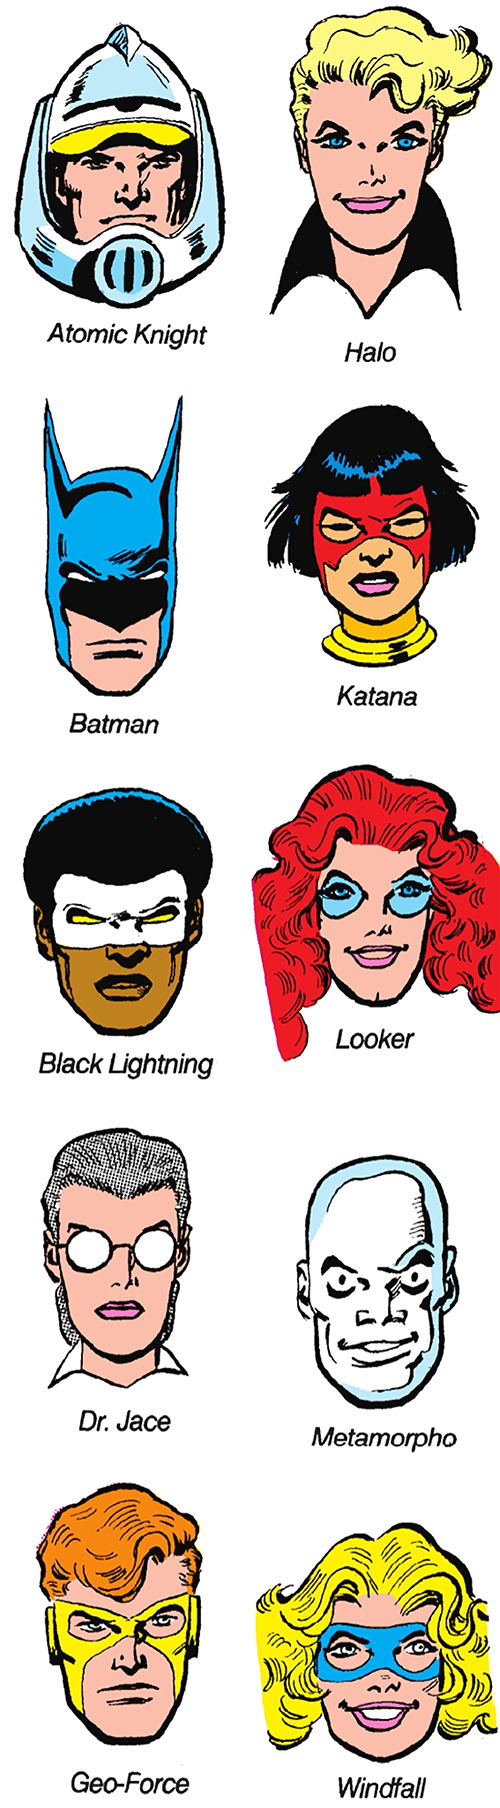 Outsiders (DC Comics) team 1987 Who's Who roster by Jim Aparo